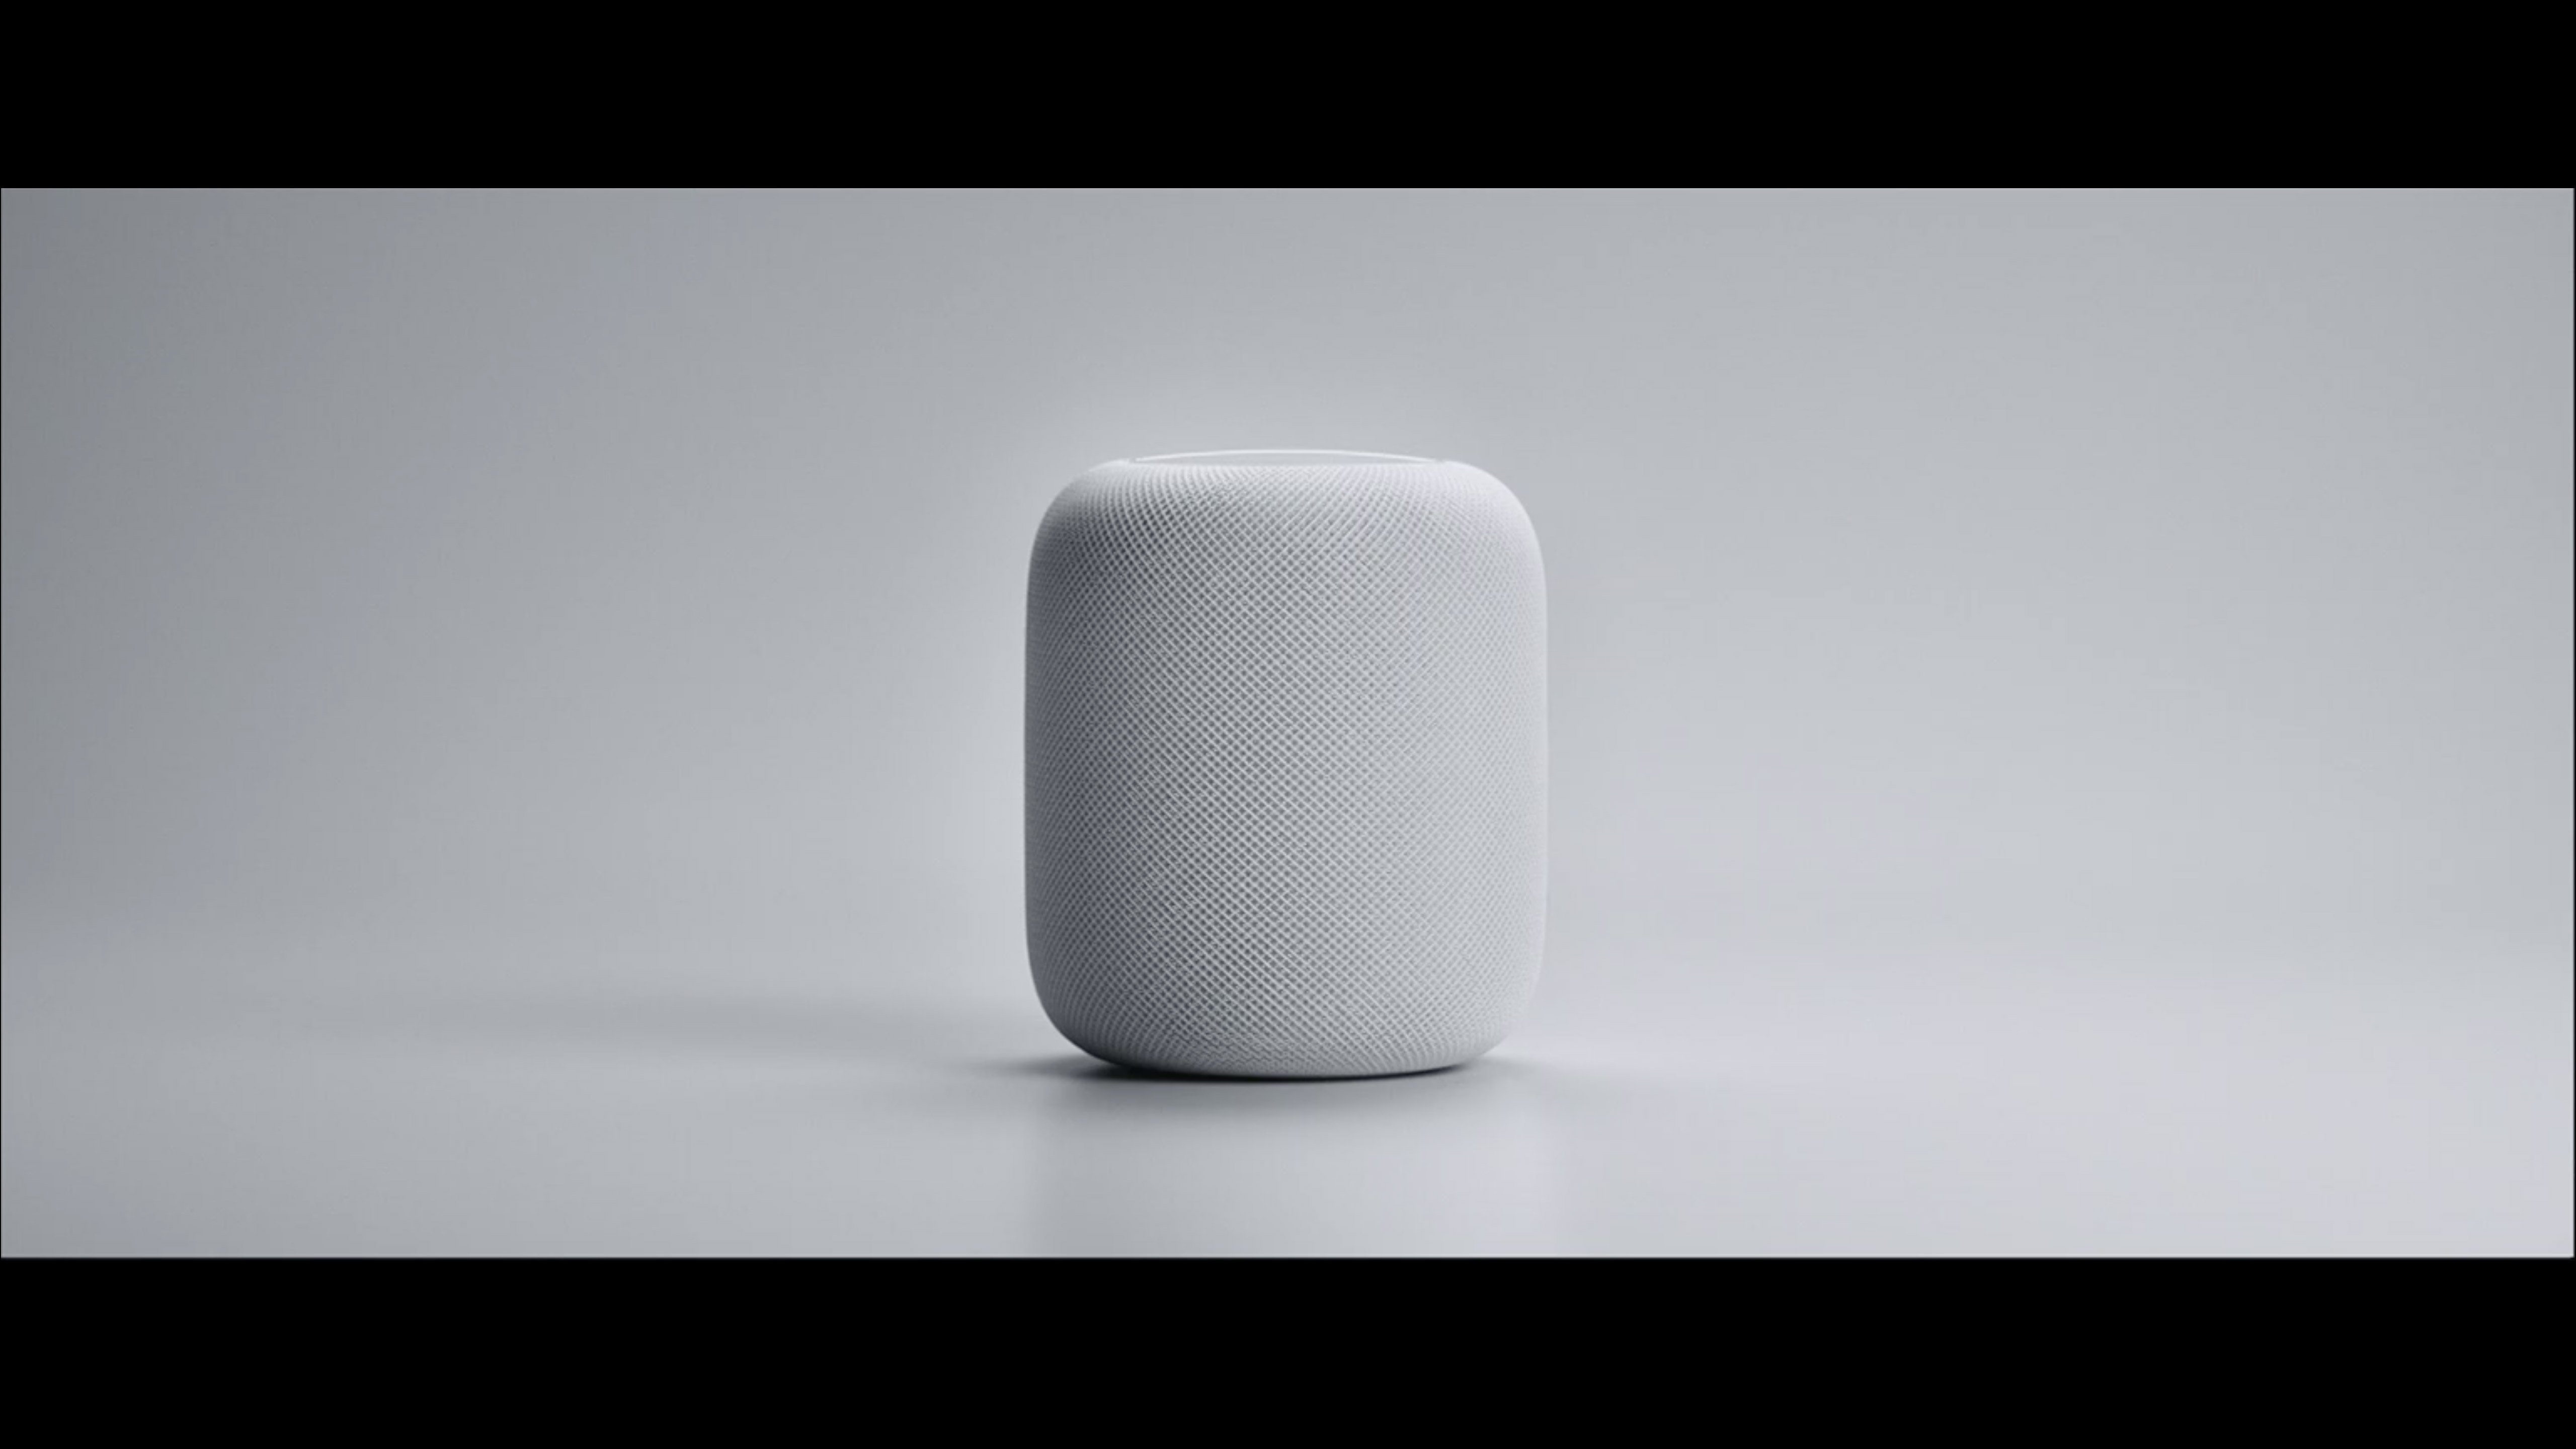 Nearly nine months after it was announced, Apple's HomePod finally has a launch date. On Tuesday, the tech giant said its new smart speaker will hit stores on Friday, February 9. Pre-orders start this Friday in the U.S., U.K. and Australia.